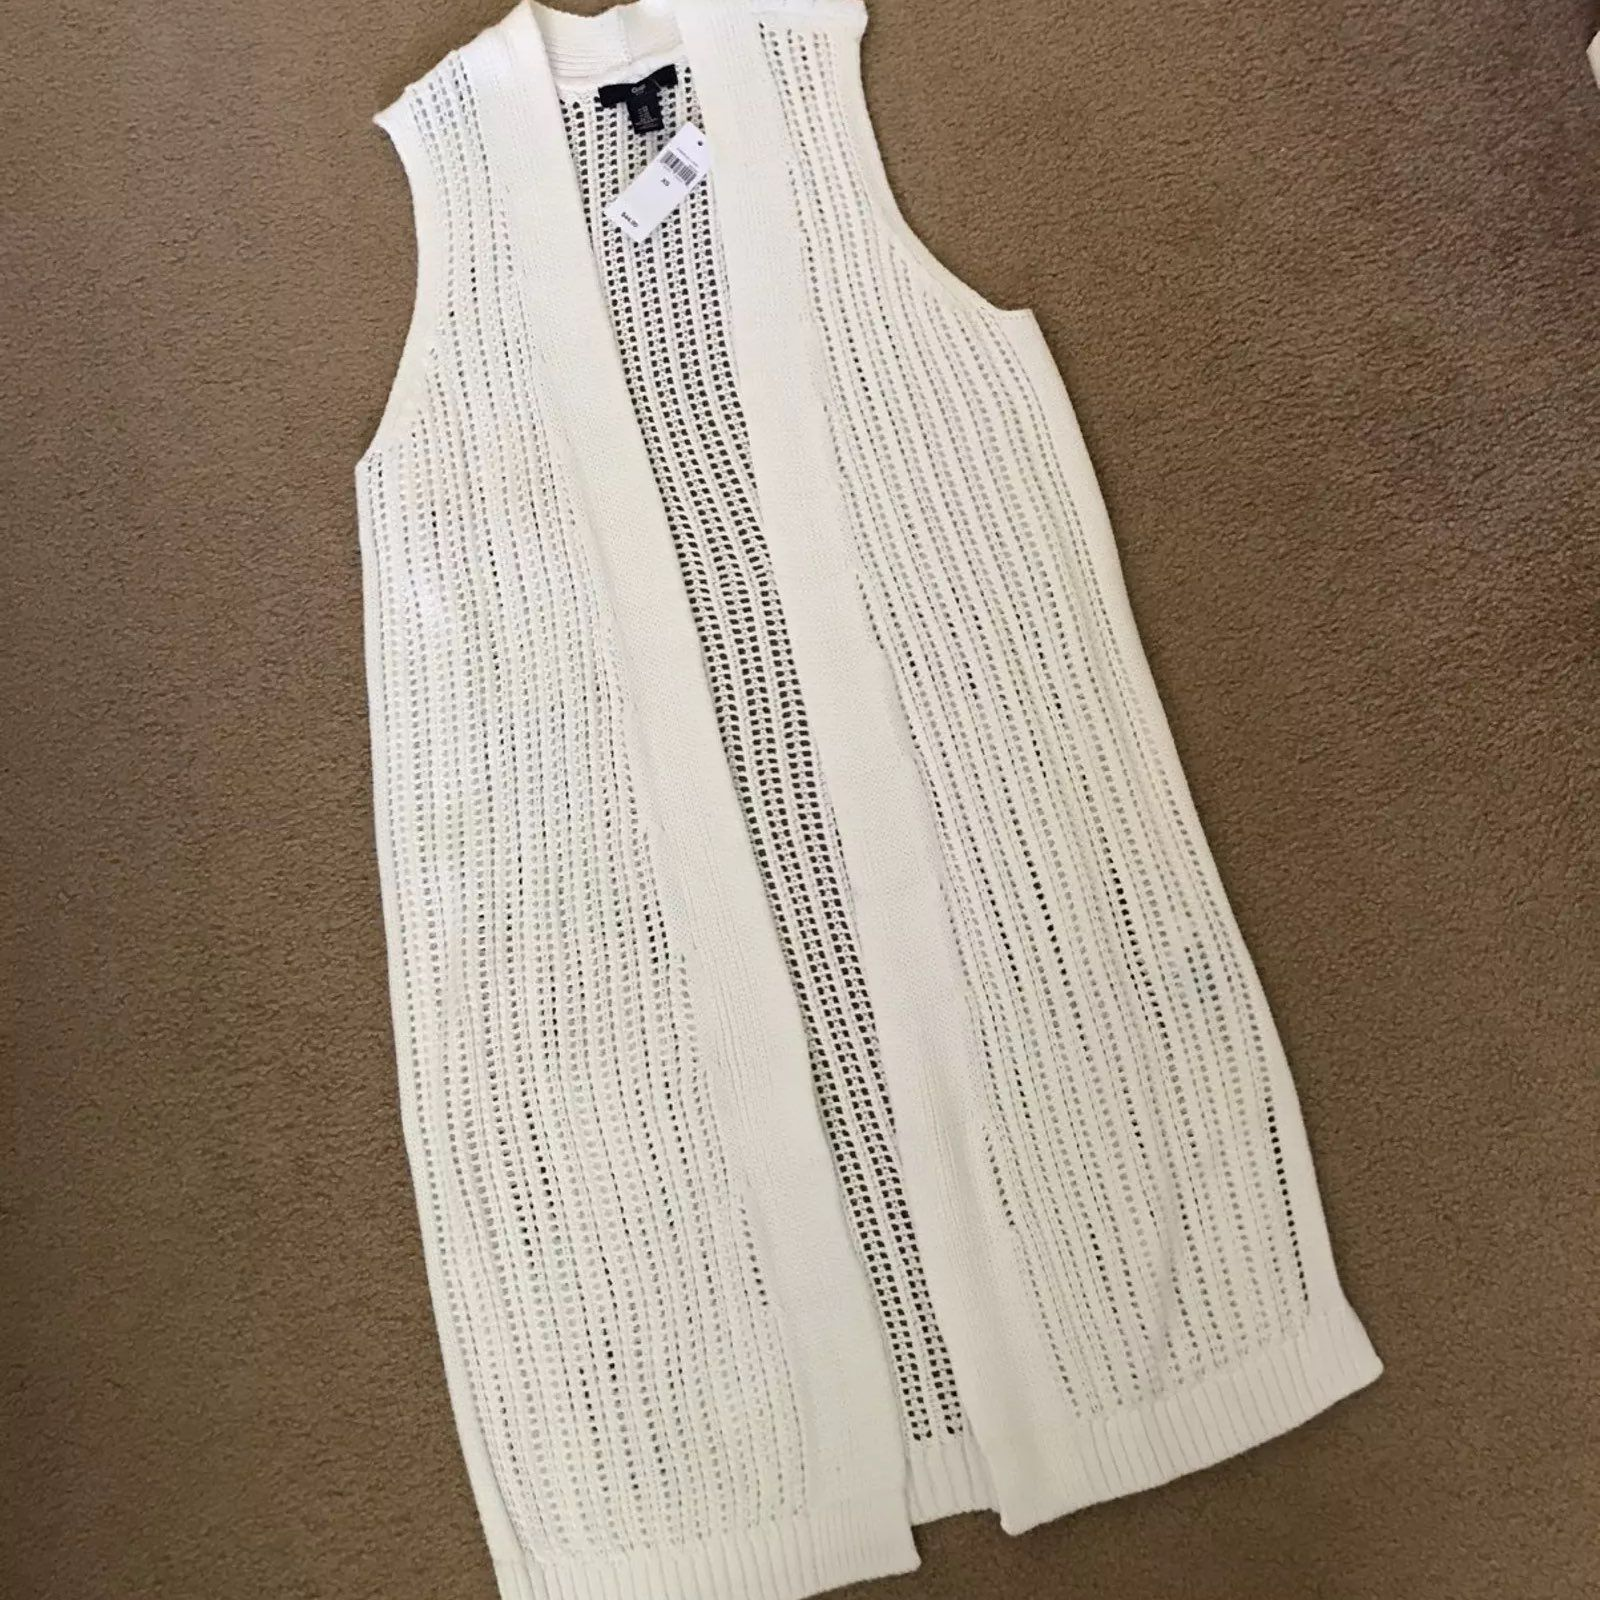 NWT GAP OPEN FRONT SWEATER VEST XS - Mercari: BUY & SELL THINGS ...